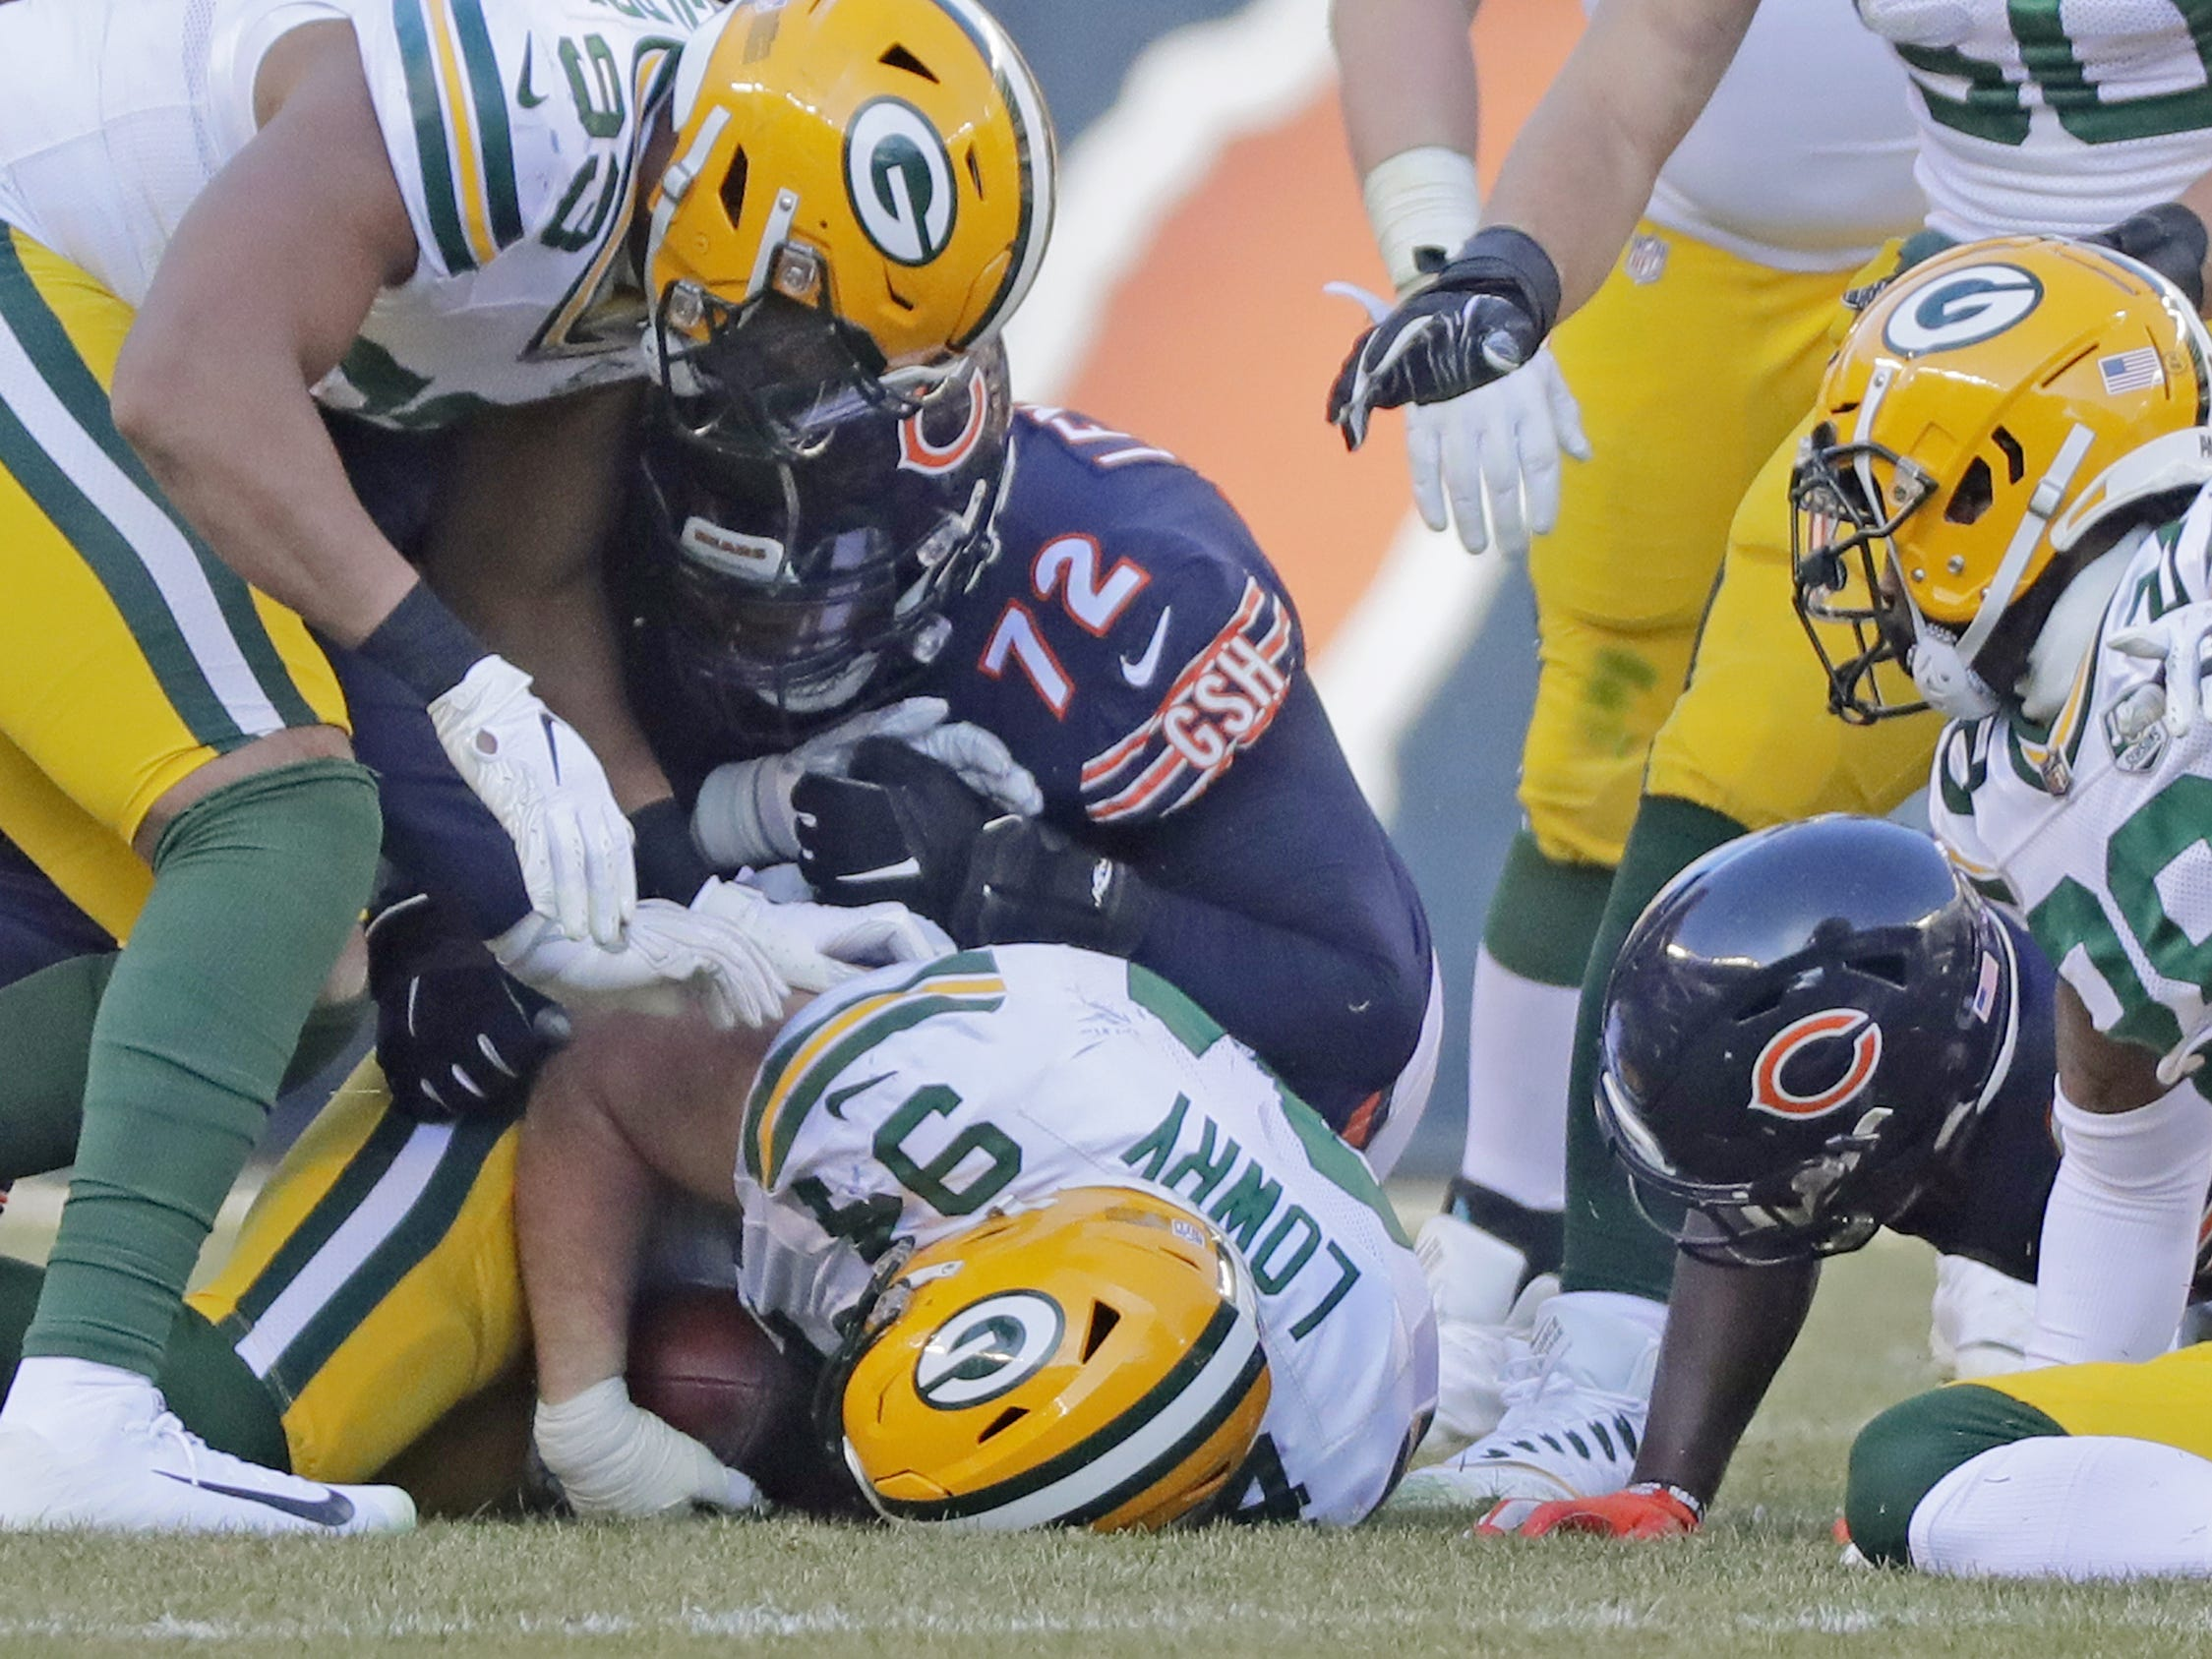 Green Bay Packers defensive end Dean Lowry (94) recovers a fumble by the Chicago Bears in the second half at Soldier Field on Sunday, December 16, 2018 in Chicago, Illinois. Adam Wesley/USA TODAY NETWORK-Wis